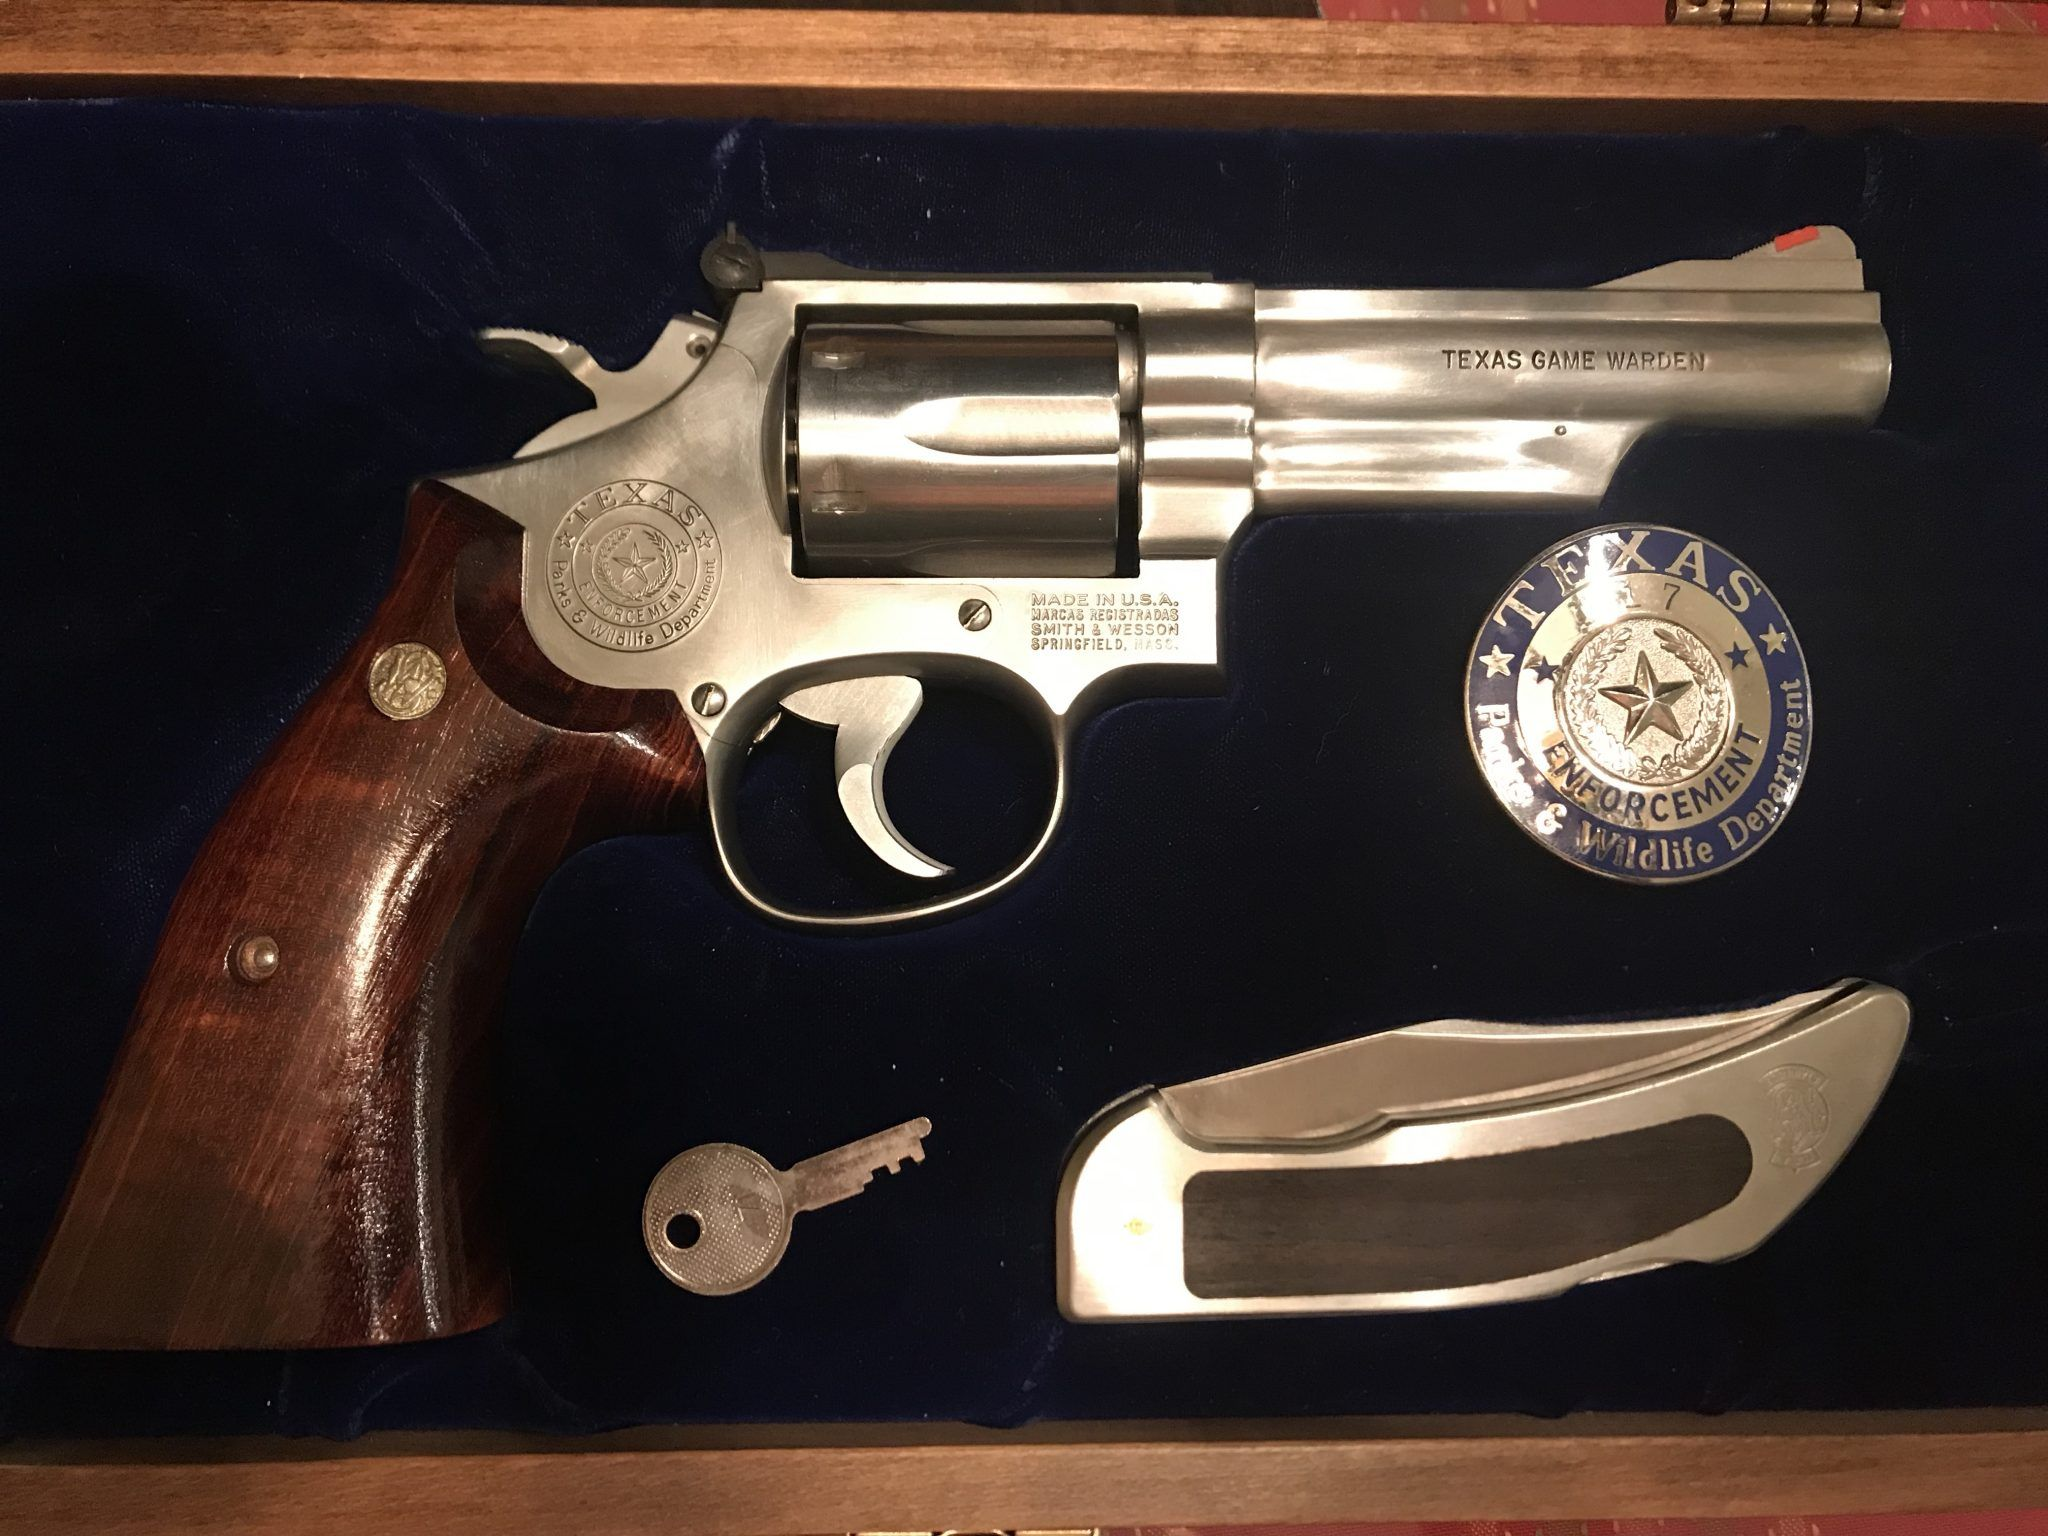 Smith & Wesson .357 Combat Magnum TEXAS GAME WARDEN ISSUE